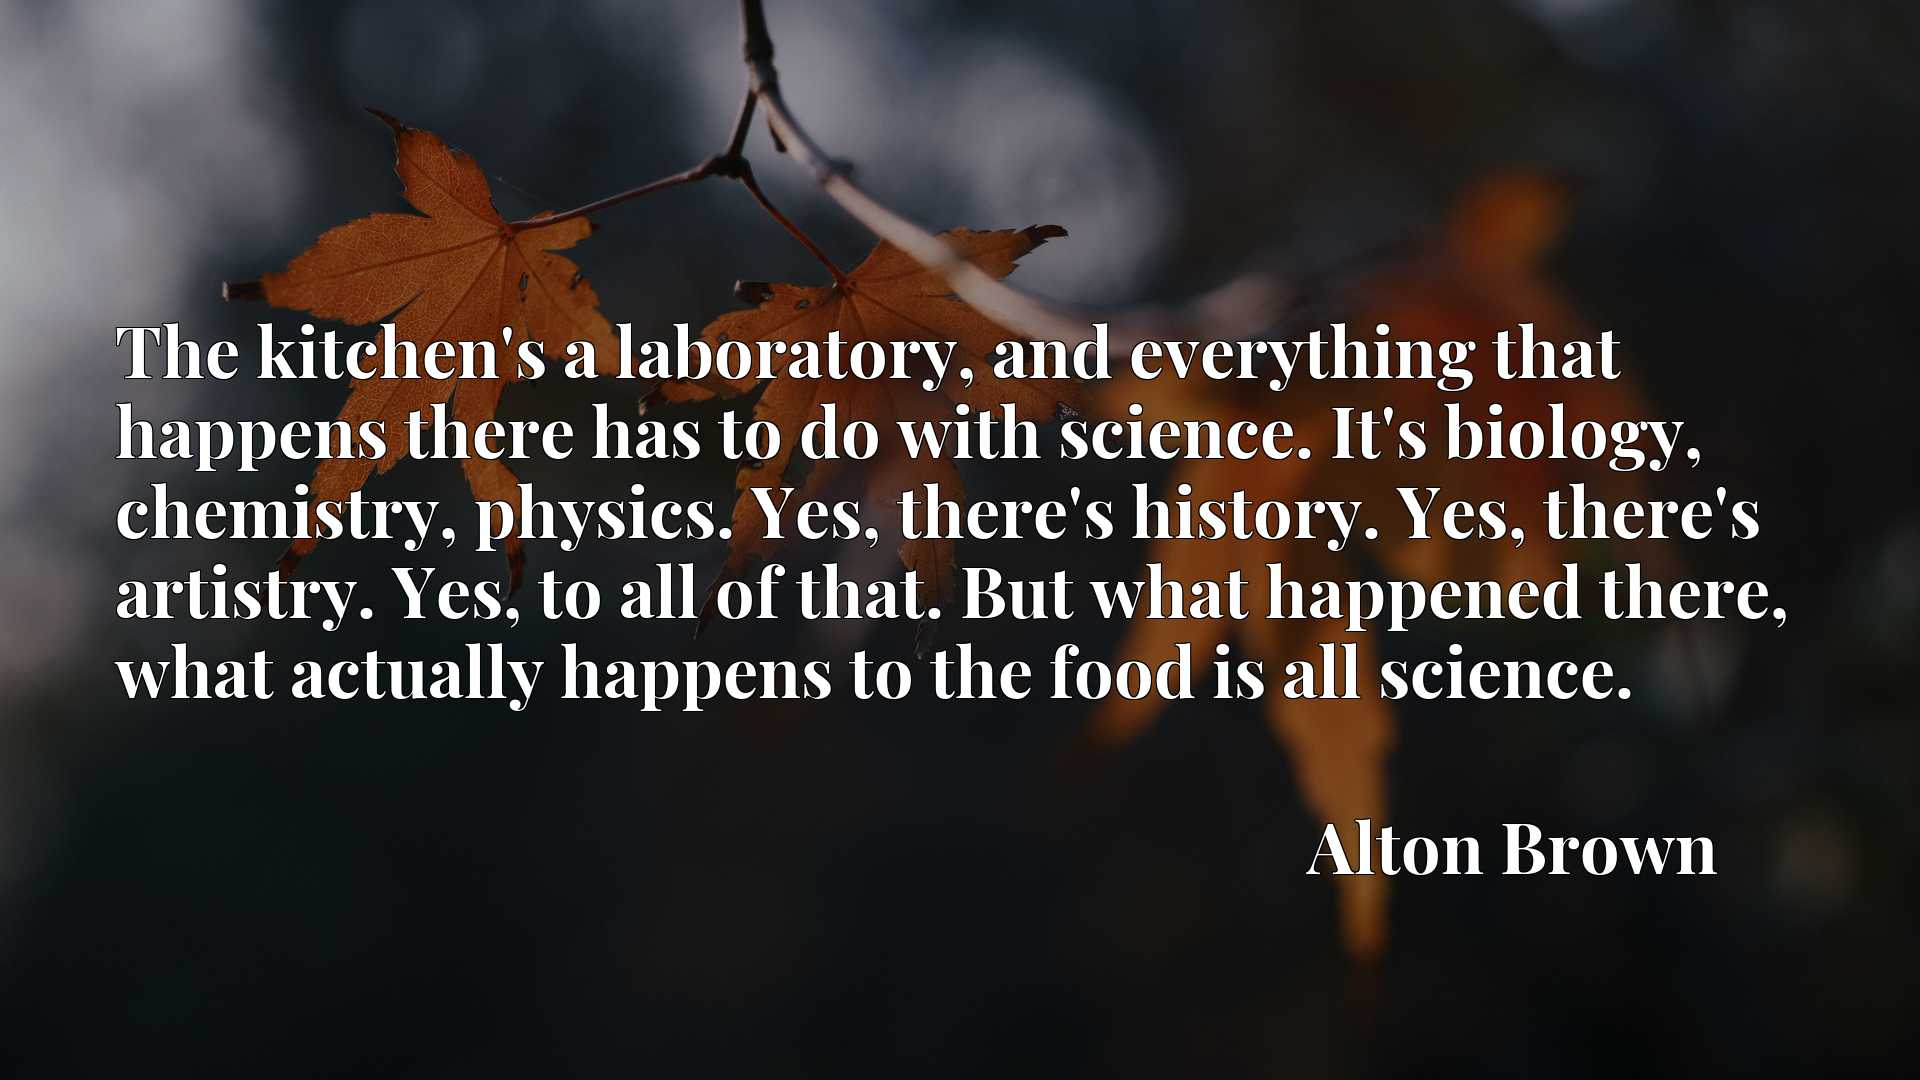 The kitchen's a laboratory, and everything that happens there has to do with science. It's biology, chemistry, physics. Yes, there's history. Yes, there's artistry. Yes, to all of that. But what happened there, what actually happens to the food is all science.